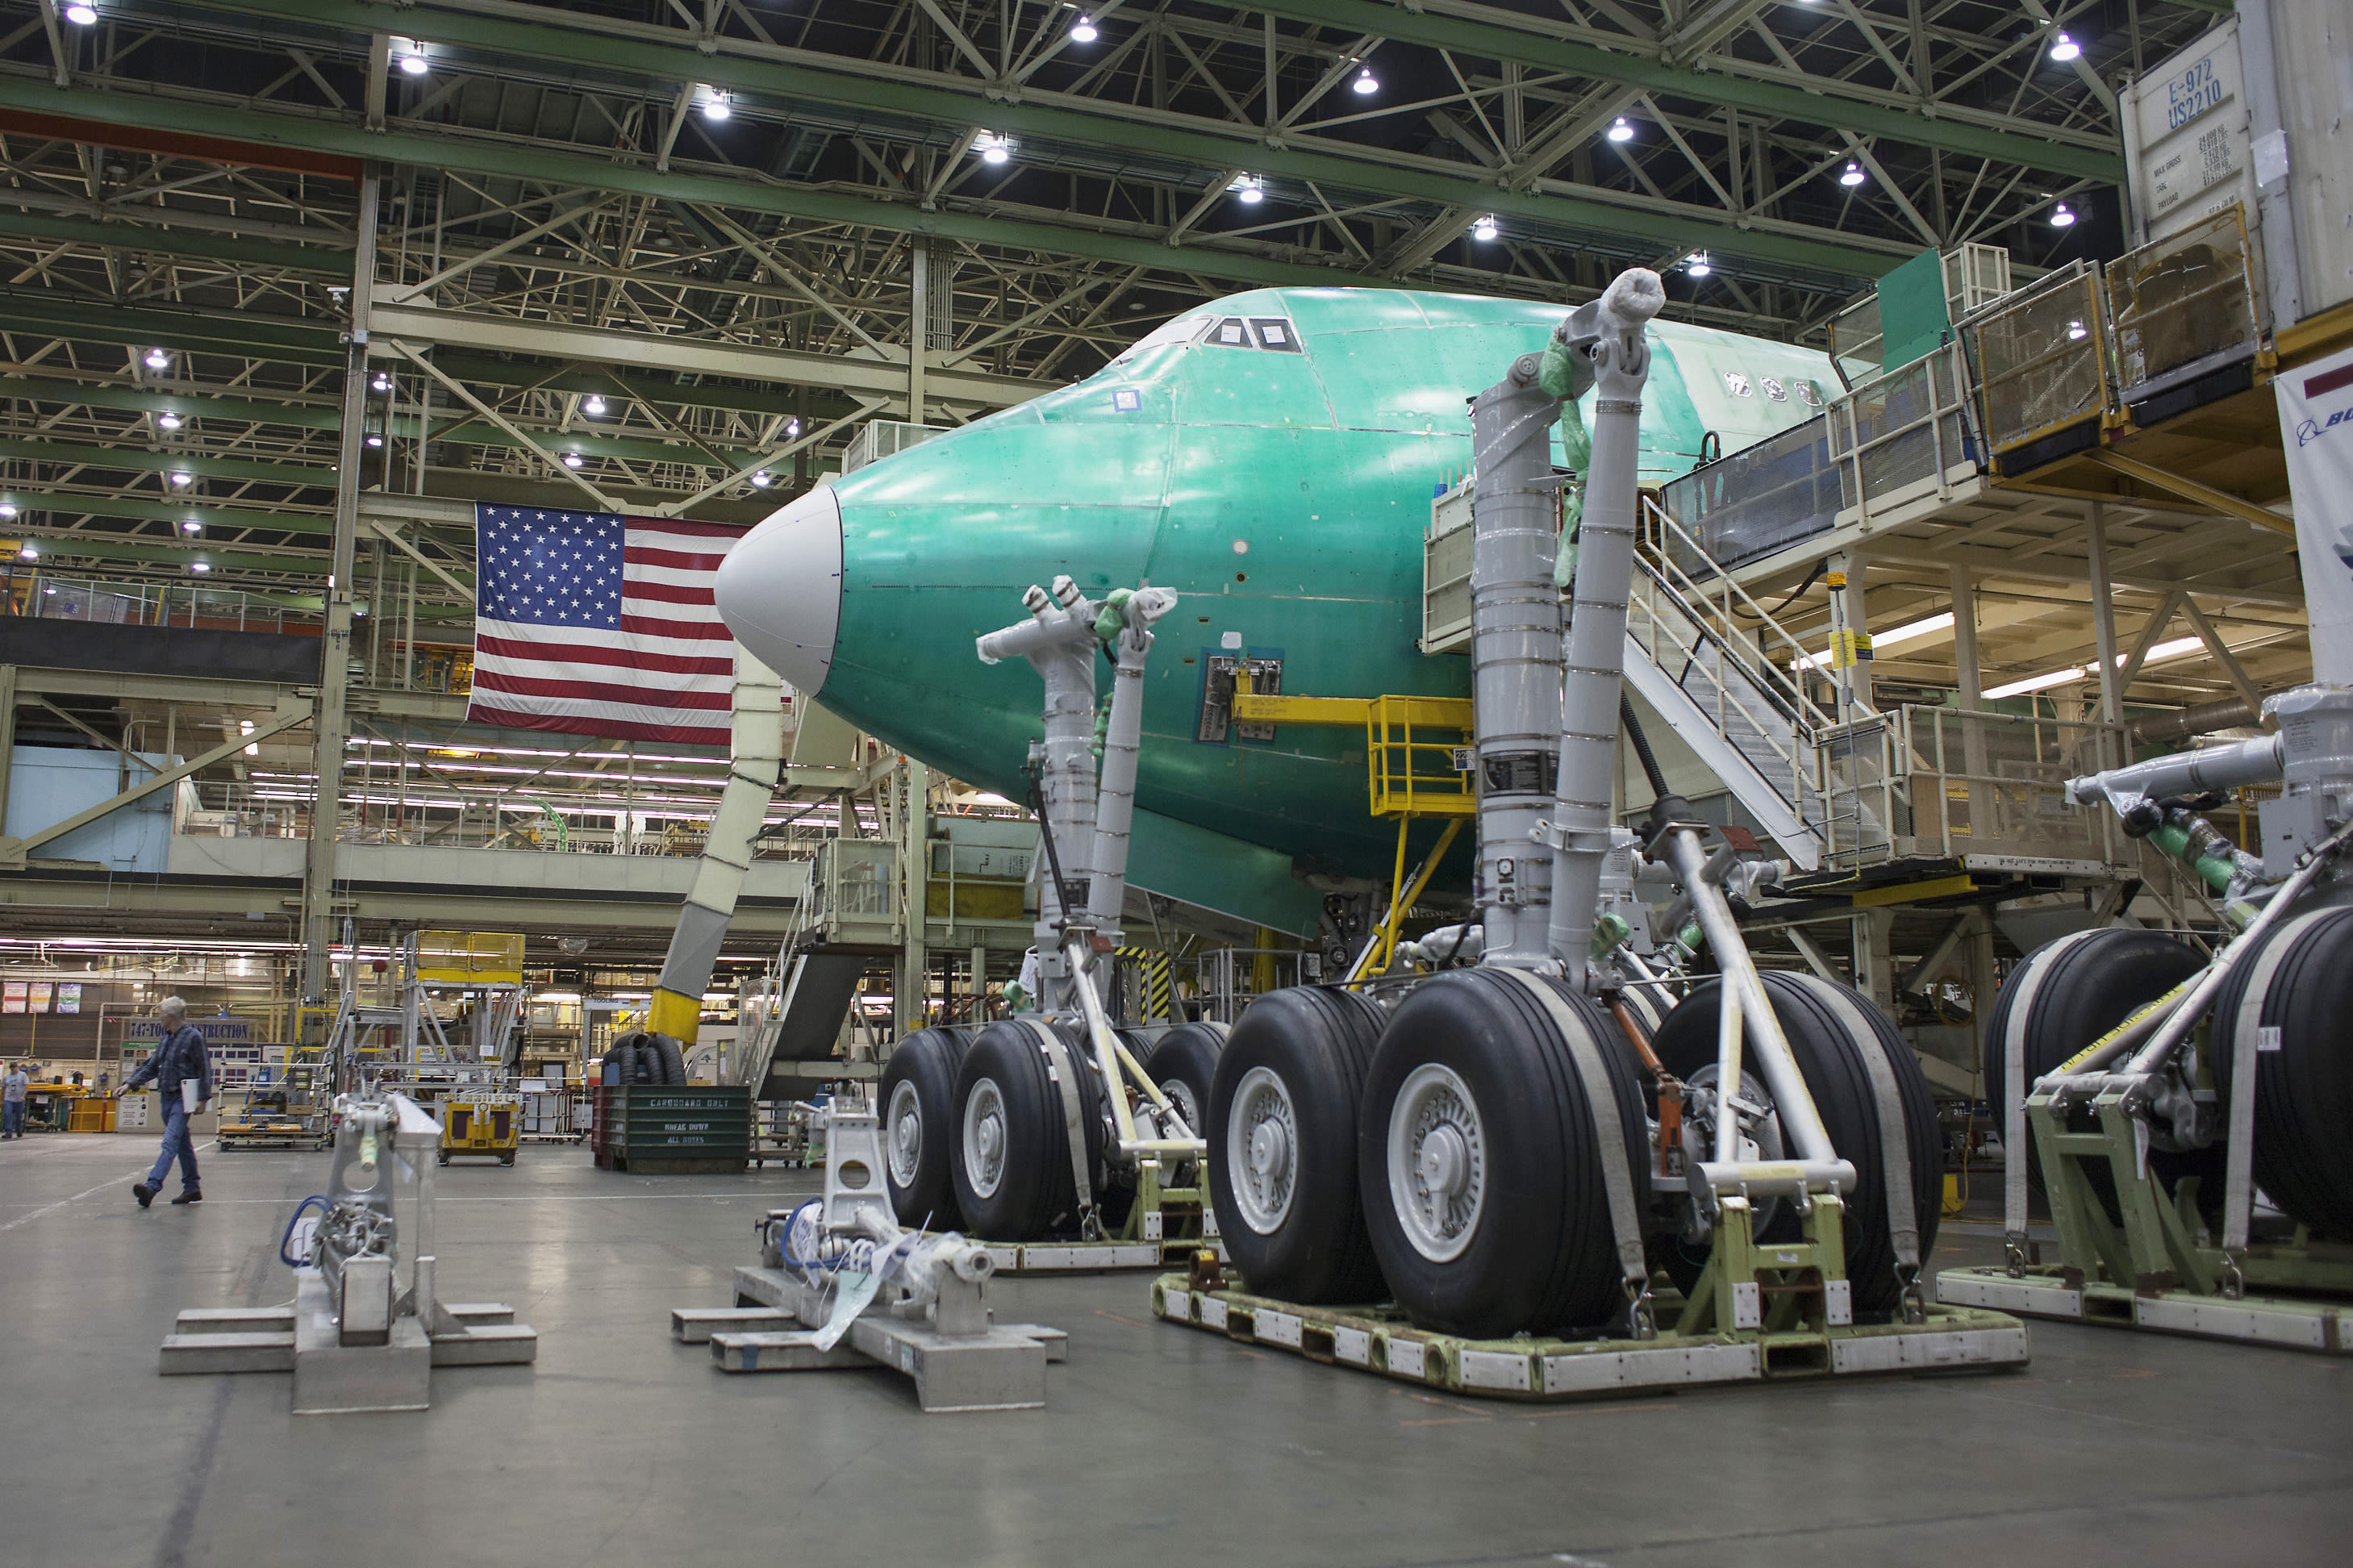 Boeing extends Seattle-area production shutdown until further notice amid coronavirus pandemic